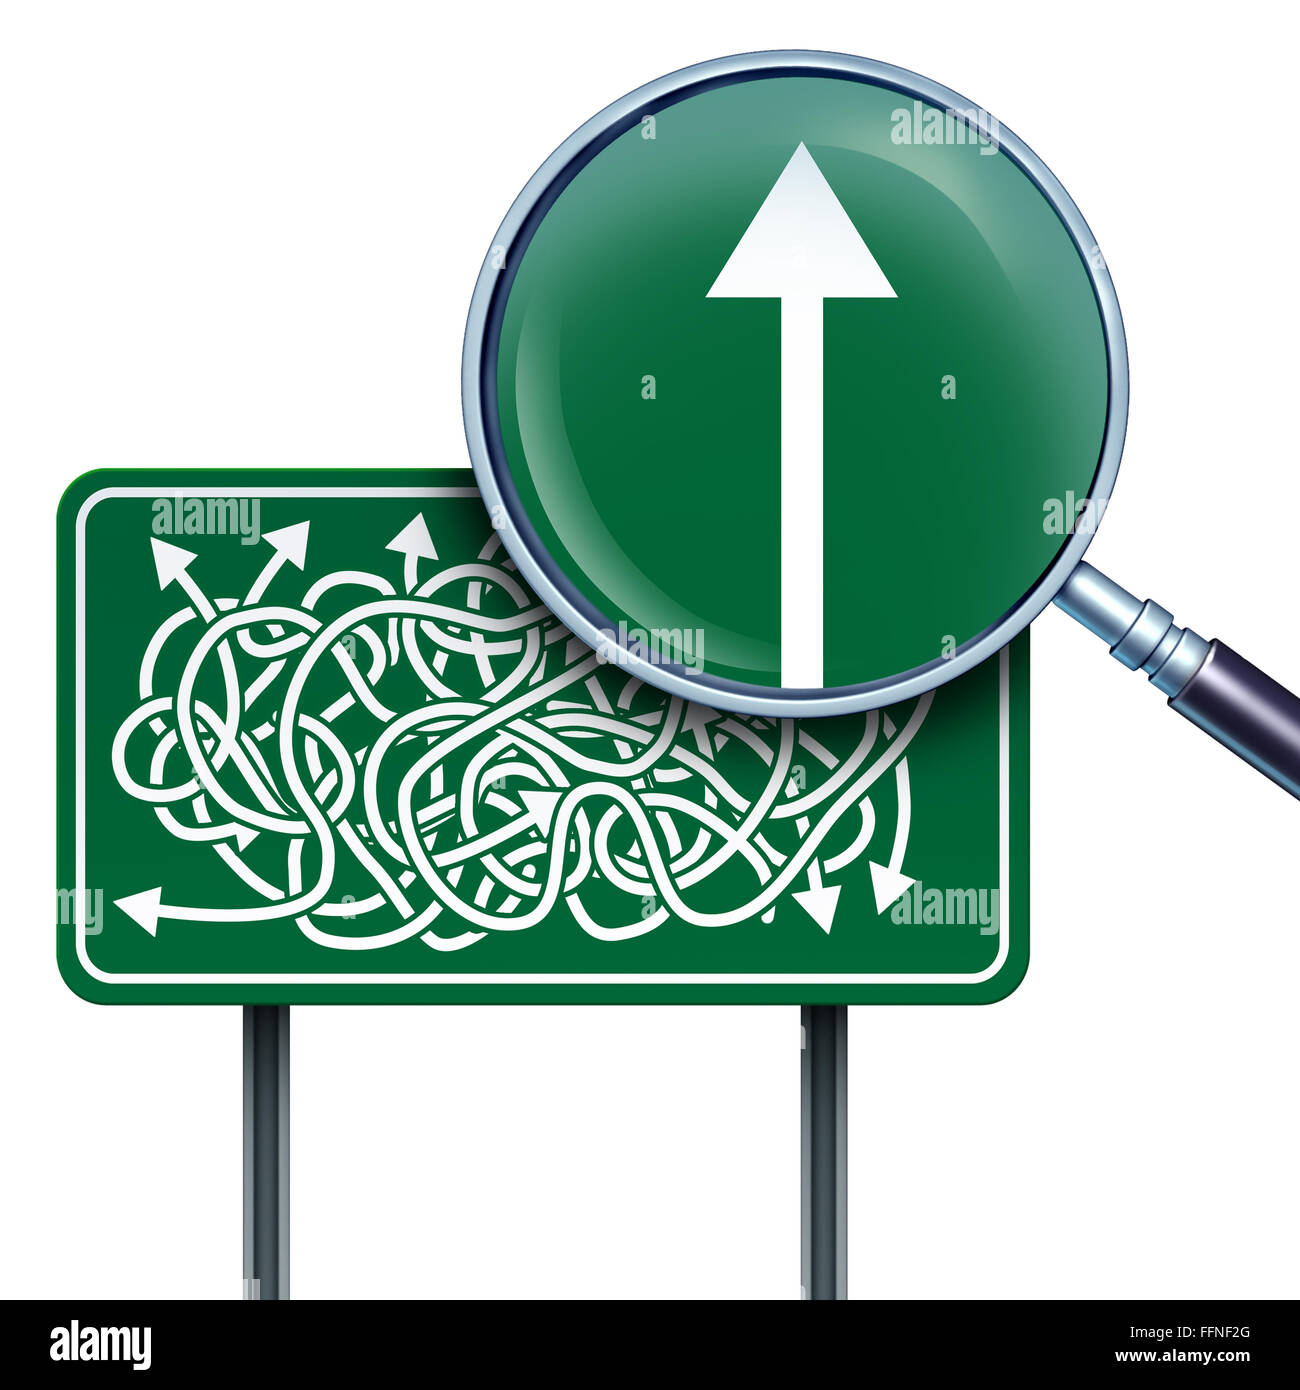 Success vision business concept as a highway road sign with confused twisted direction arrows and a magnifying glass - Stock Image